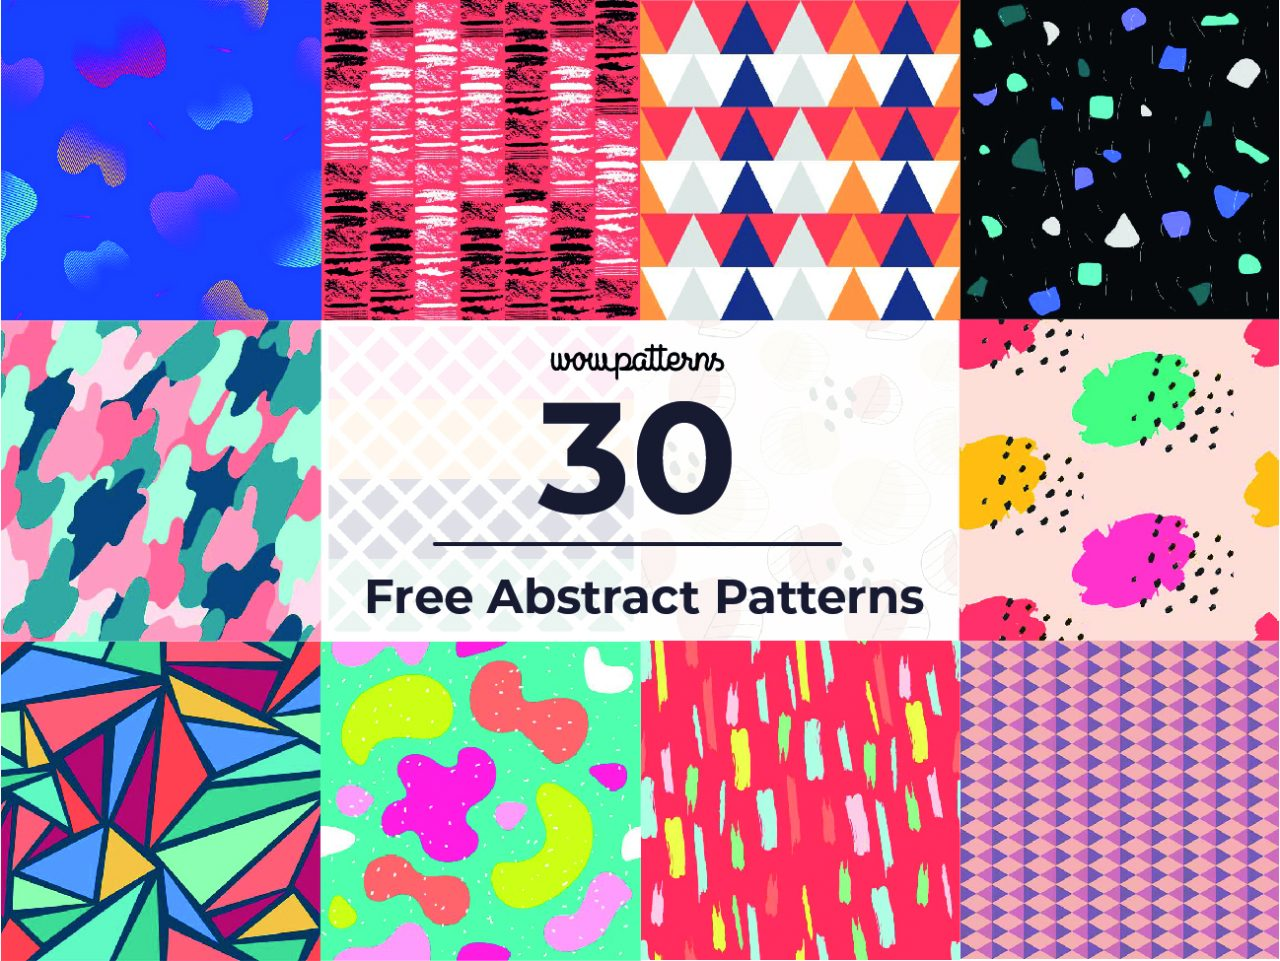 30 different abstract pattern thumbnail